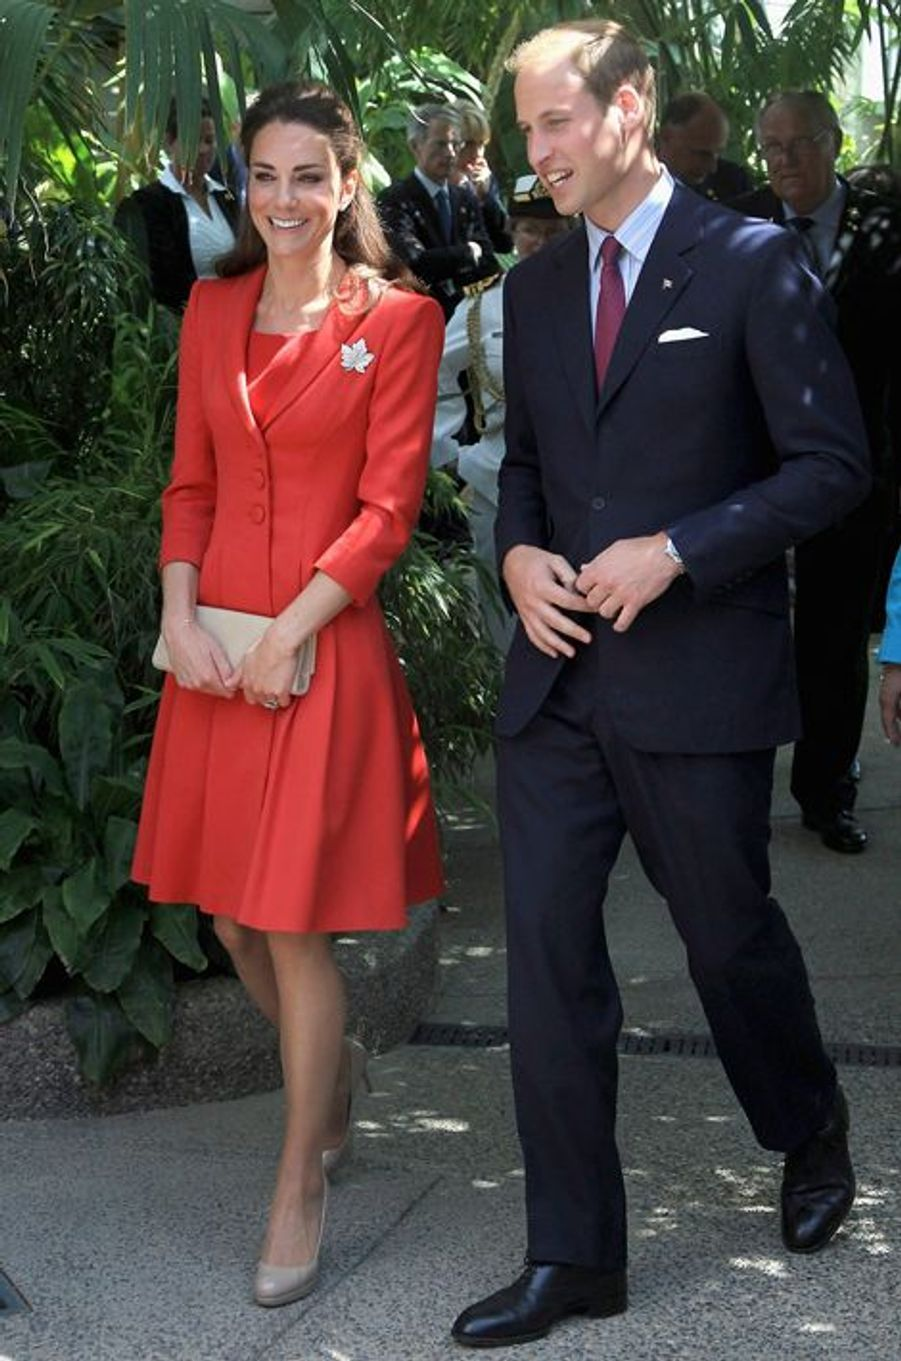 La duchesse de Cambridge Kate avec le prince William, le 8 juillet 2011